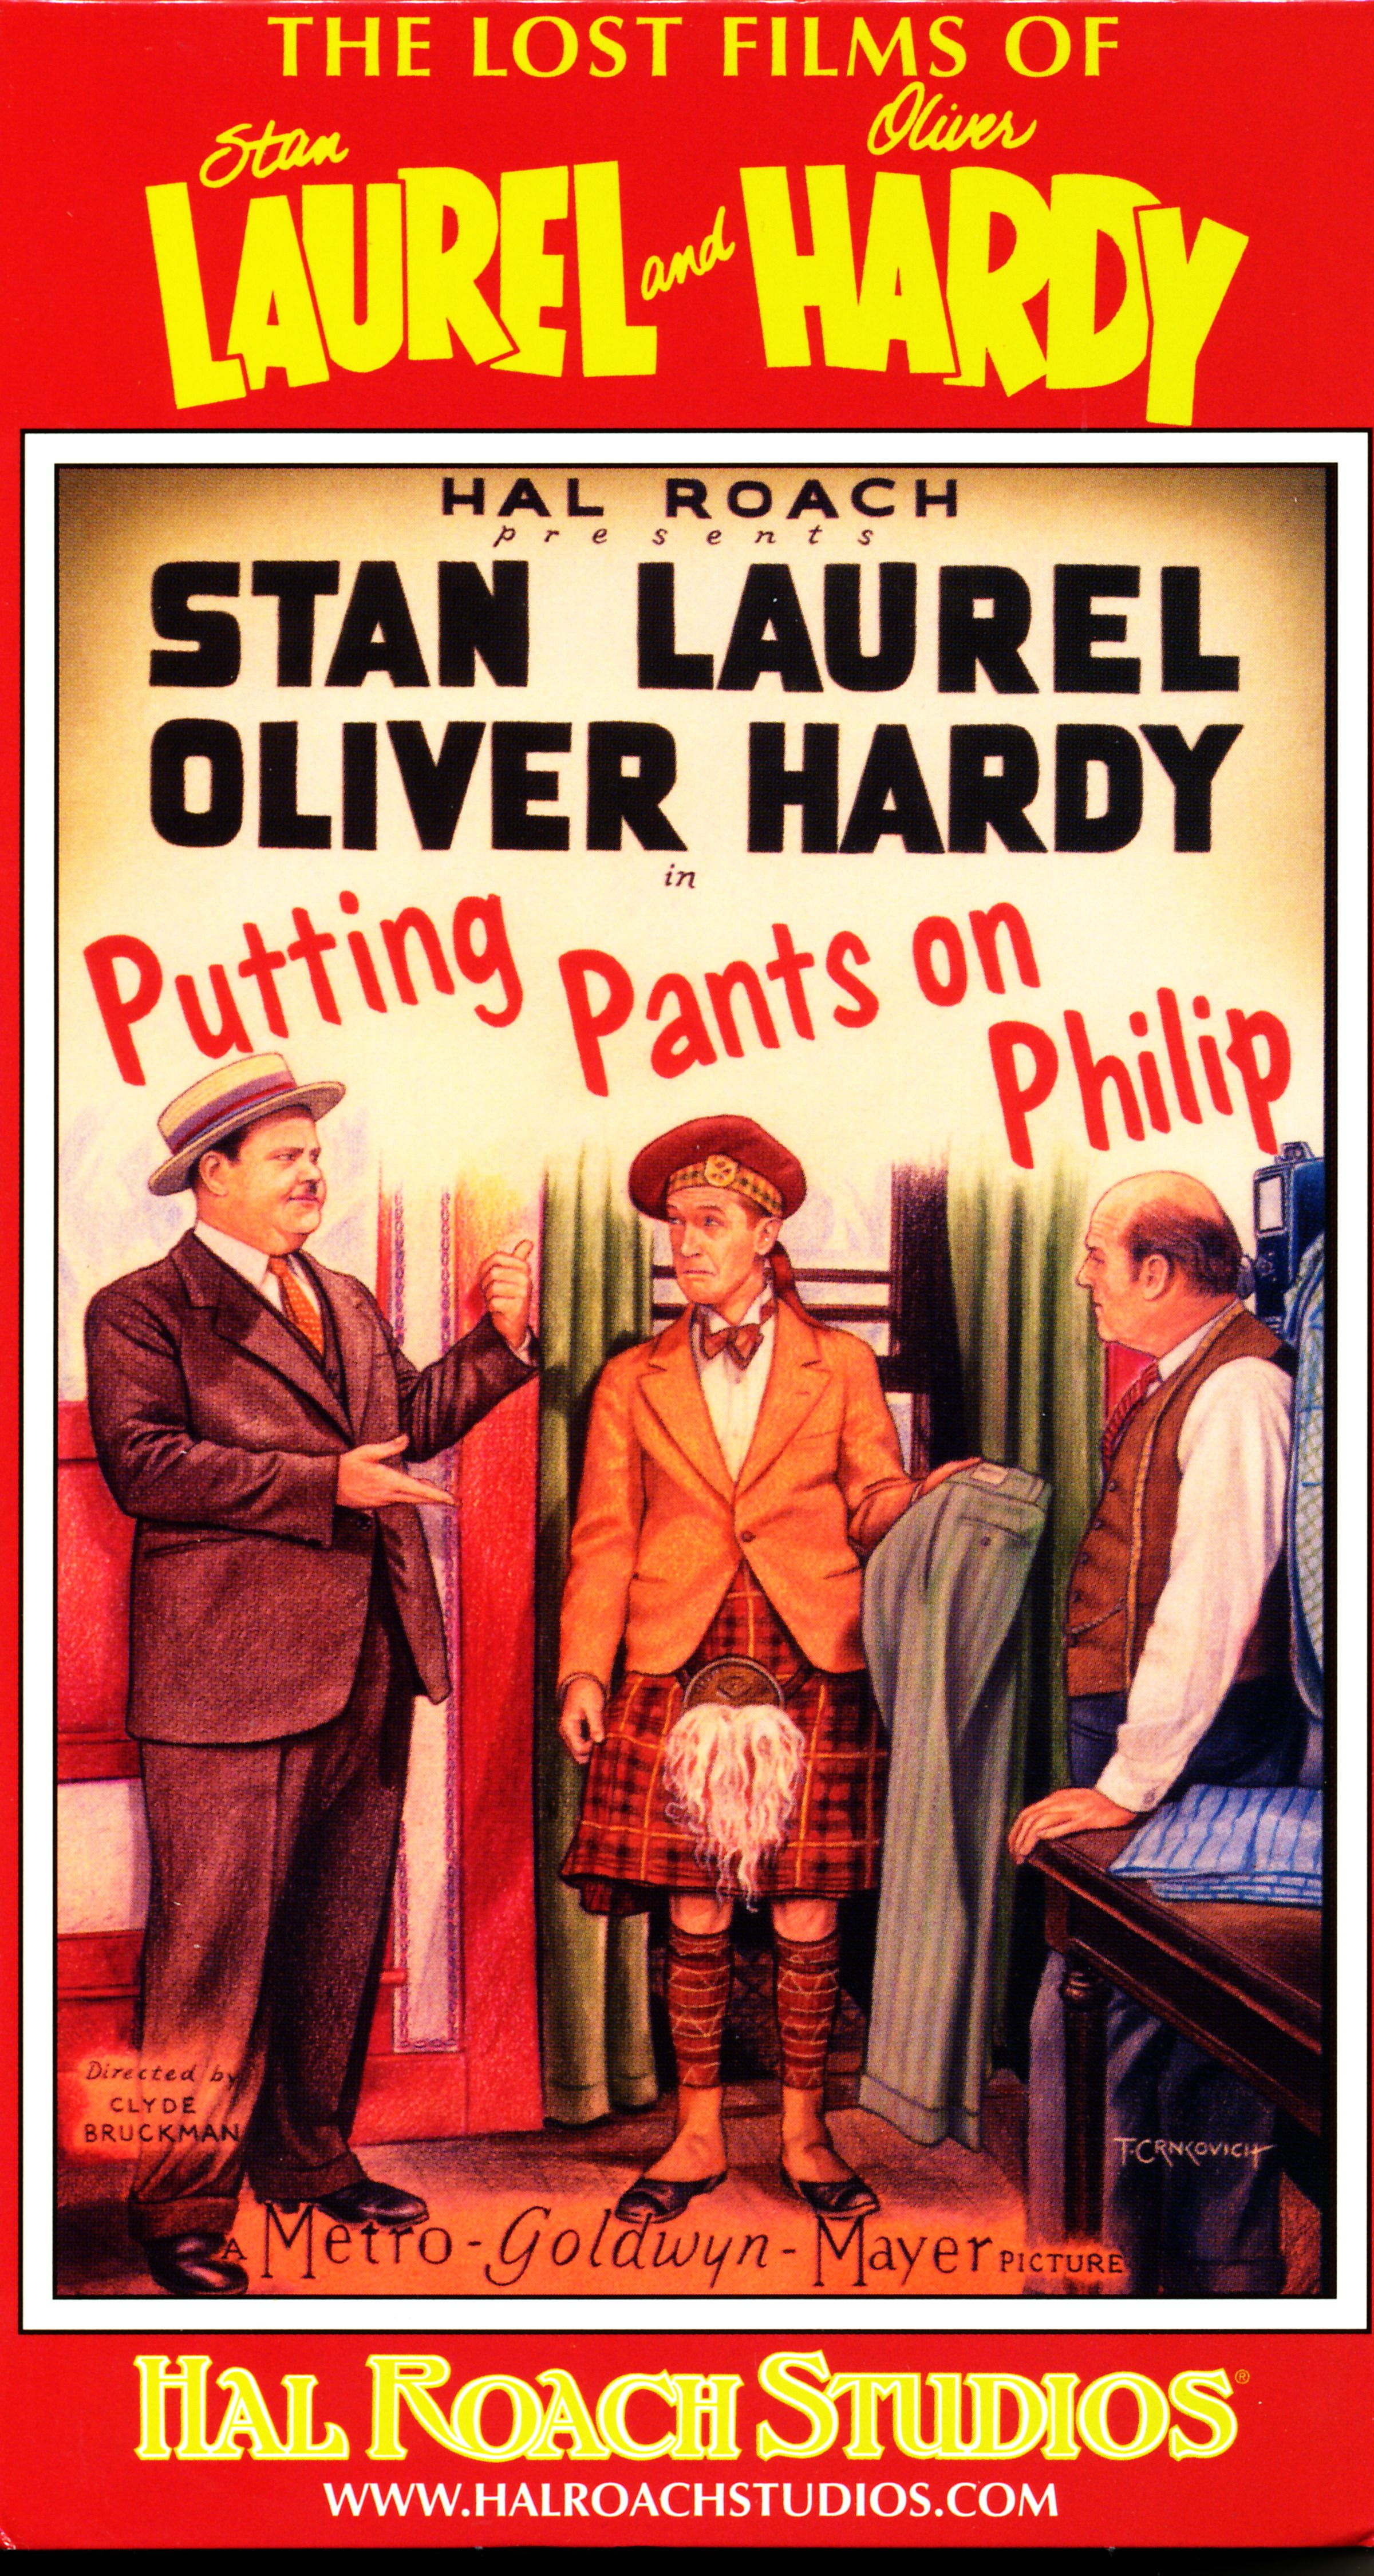 Pin by Rizal Baysa on Laurel and Hardy in 2019 | Stan ...